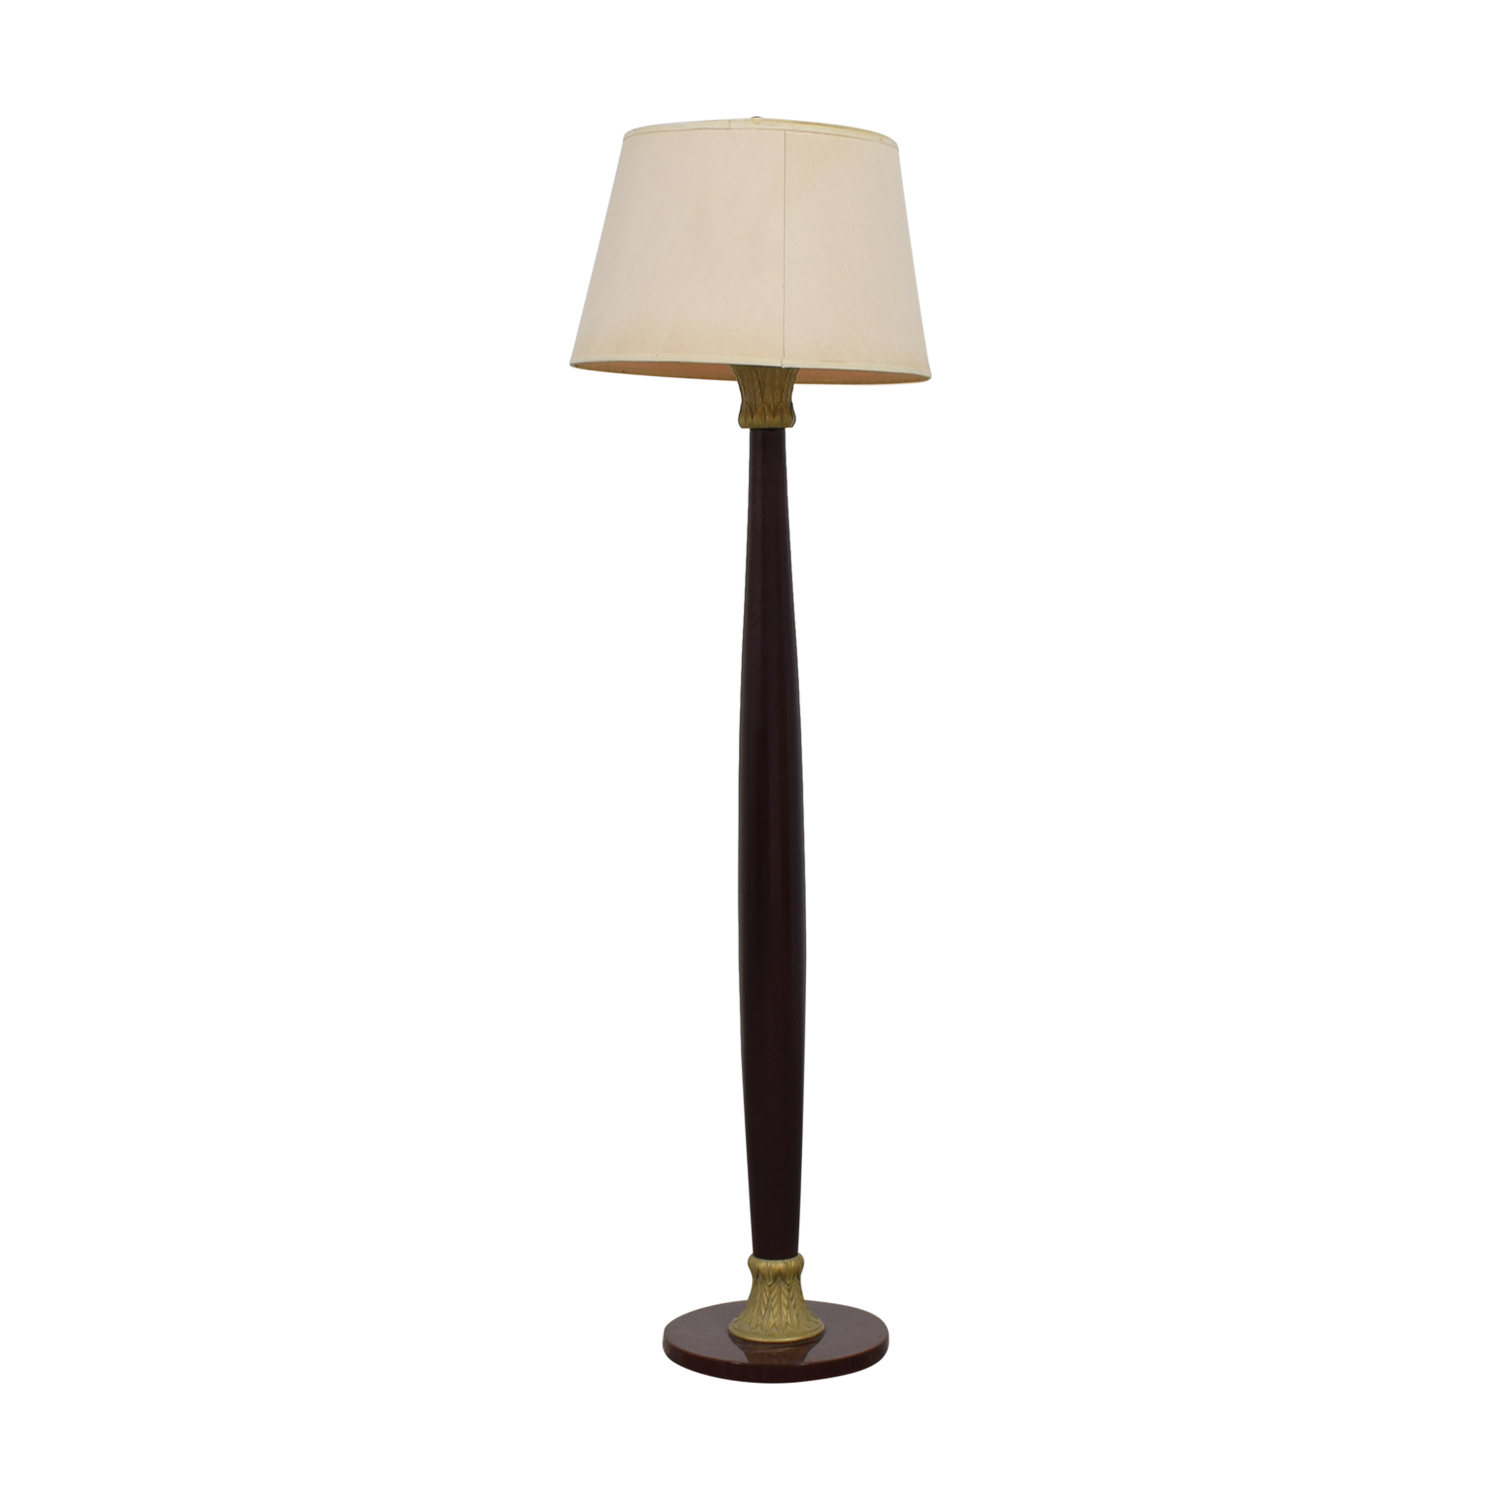 Wood Floor Lamp / Decor